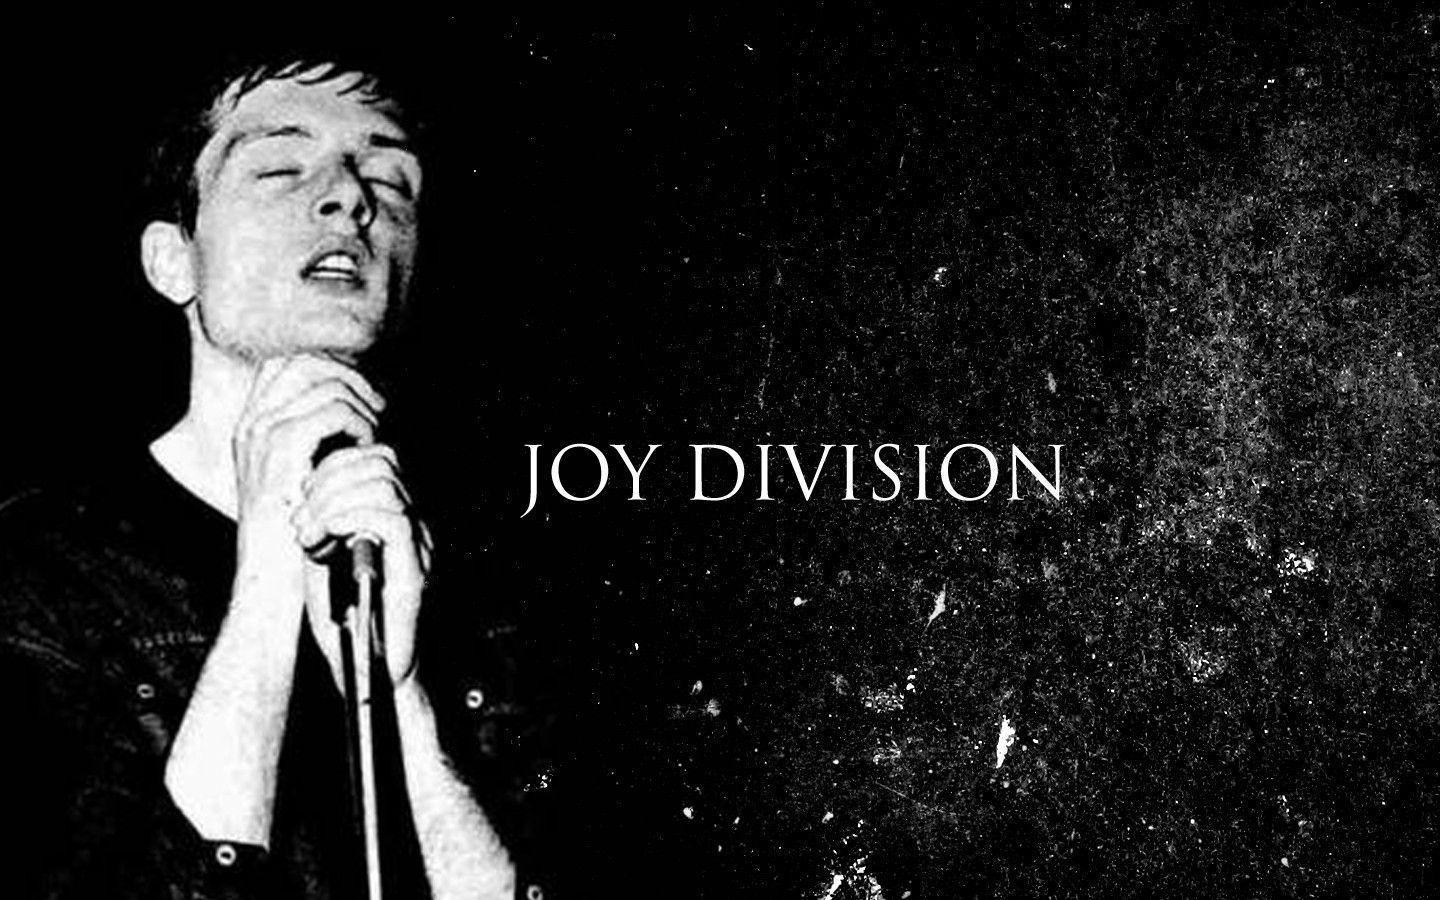 joy division images hd - photo #21